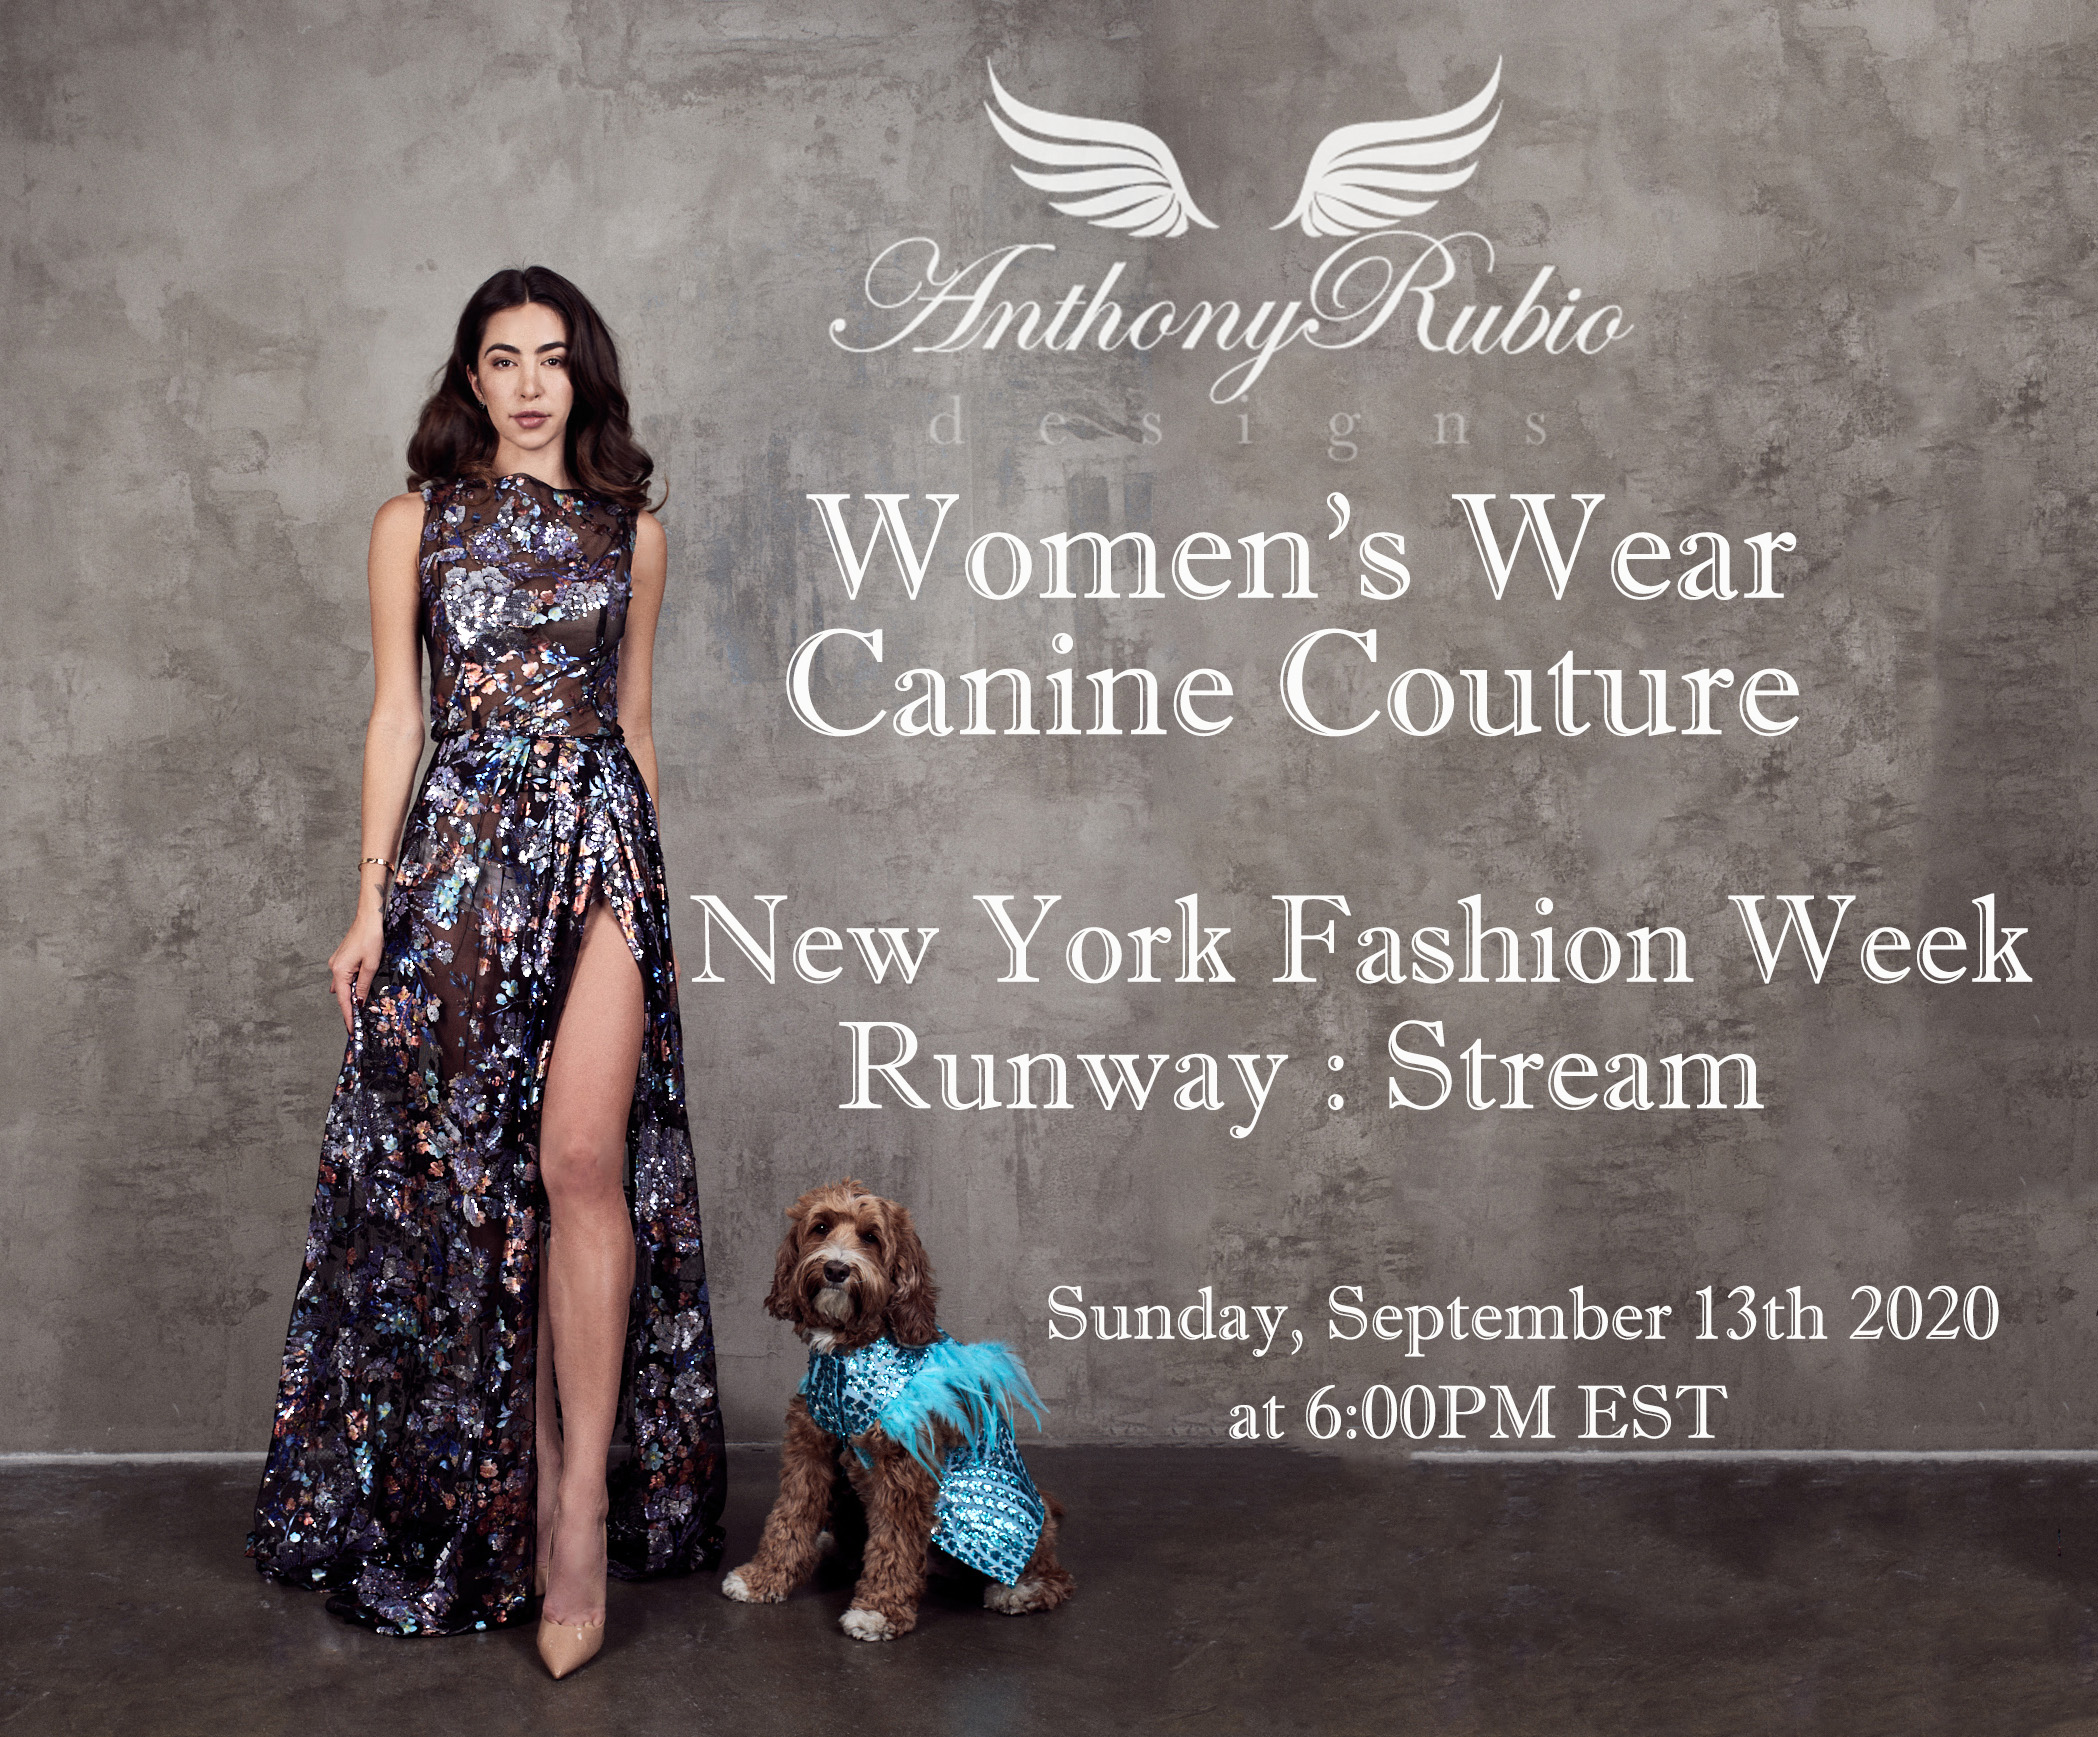 Anthony Rubio: NYFW Invite - Canine Couture & Women's Wear Runway